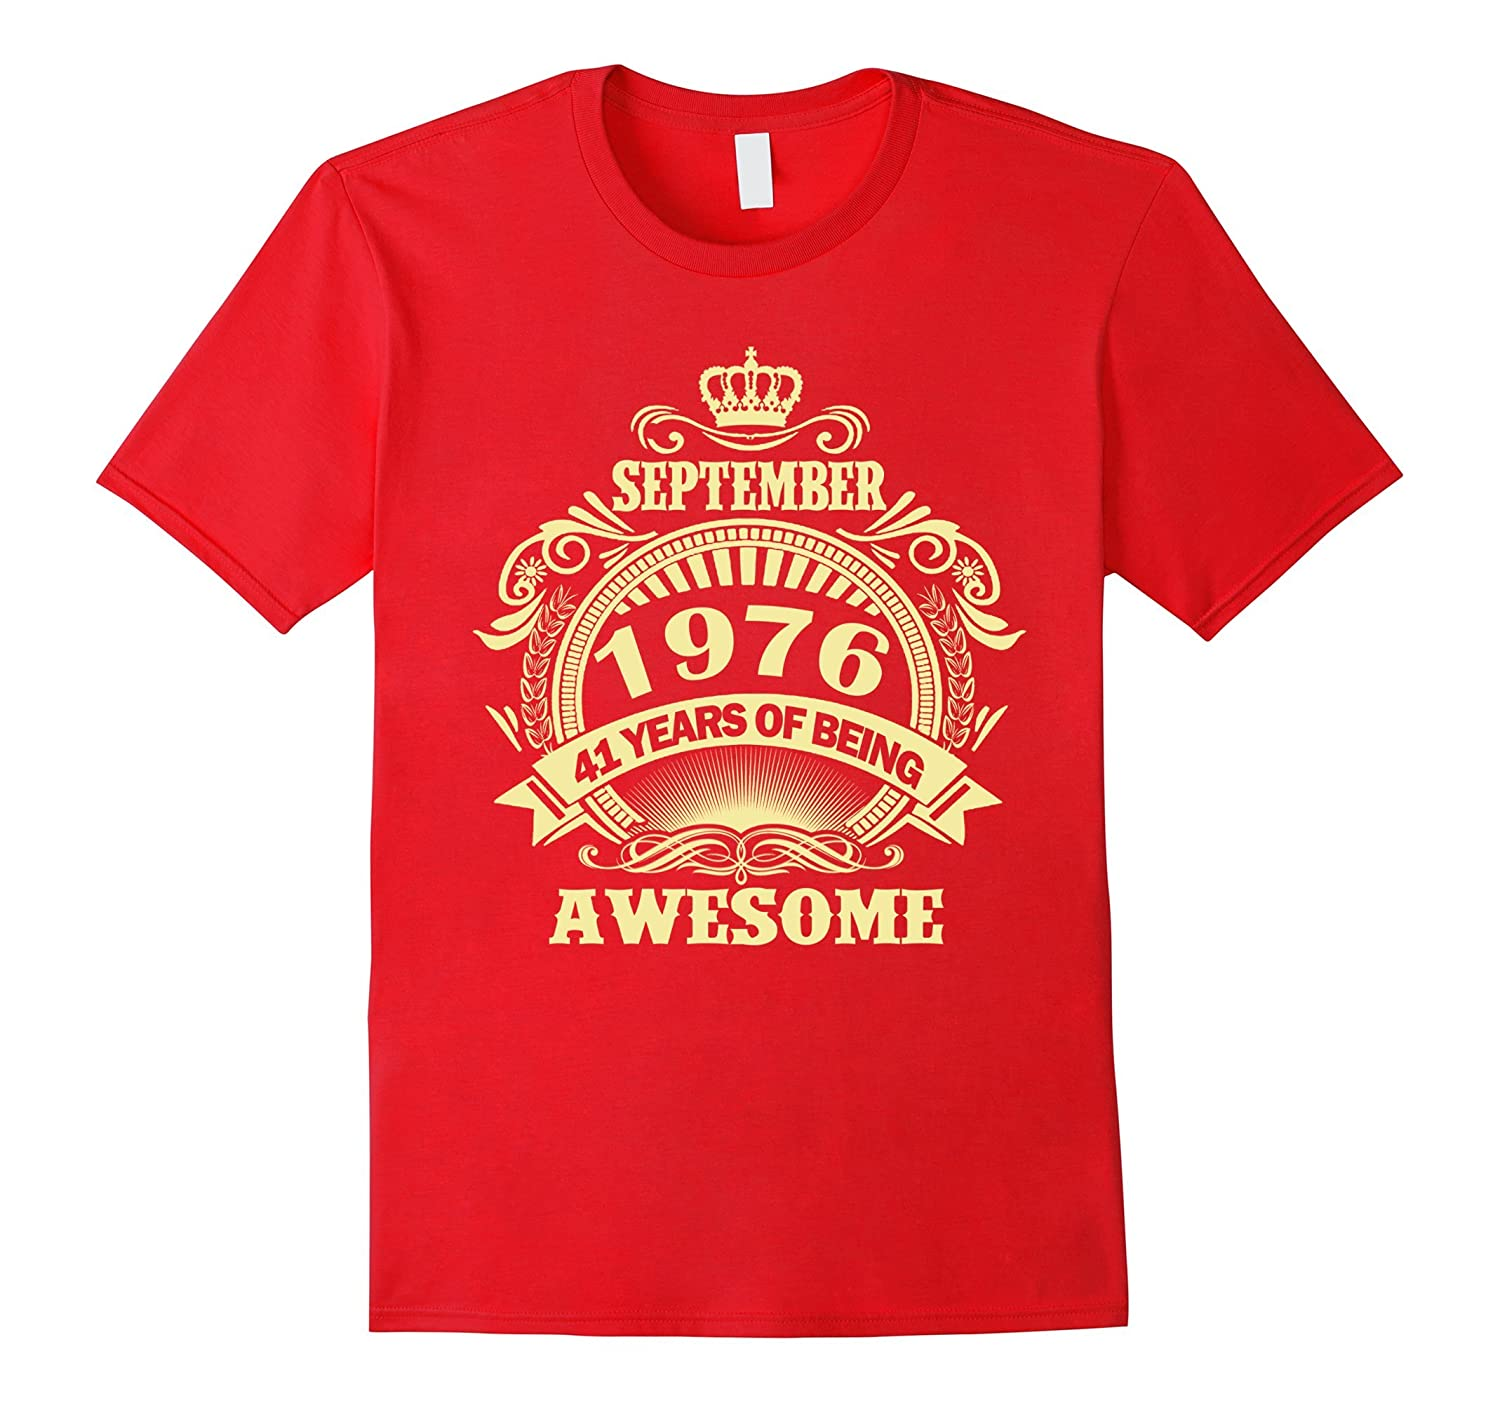 September 1976 41 years of being awesome T-shirt-Vaci